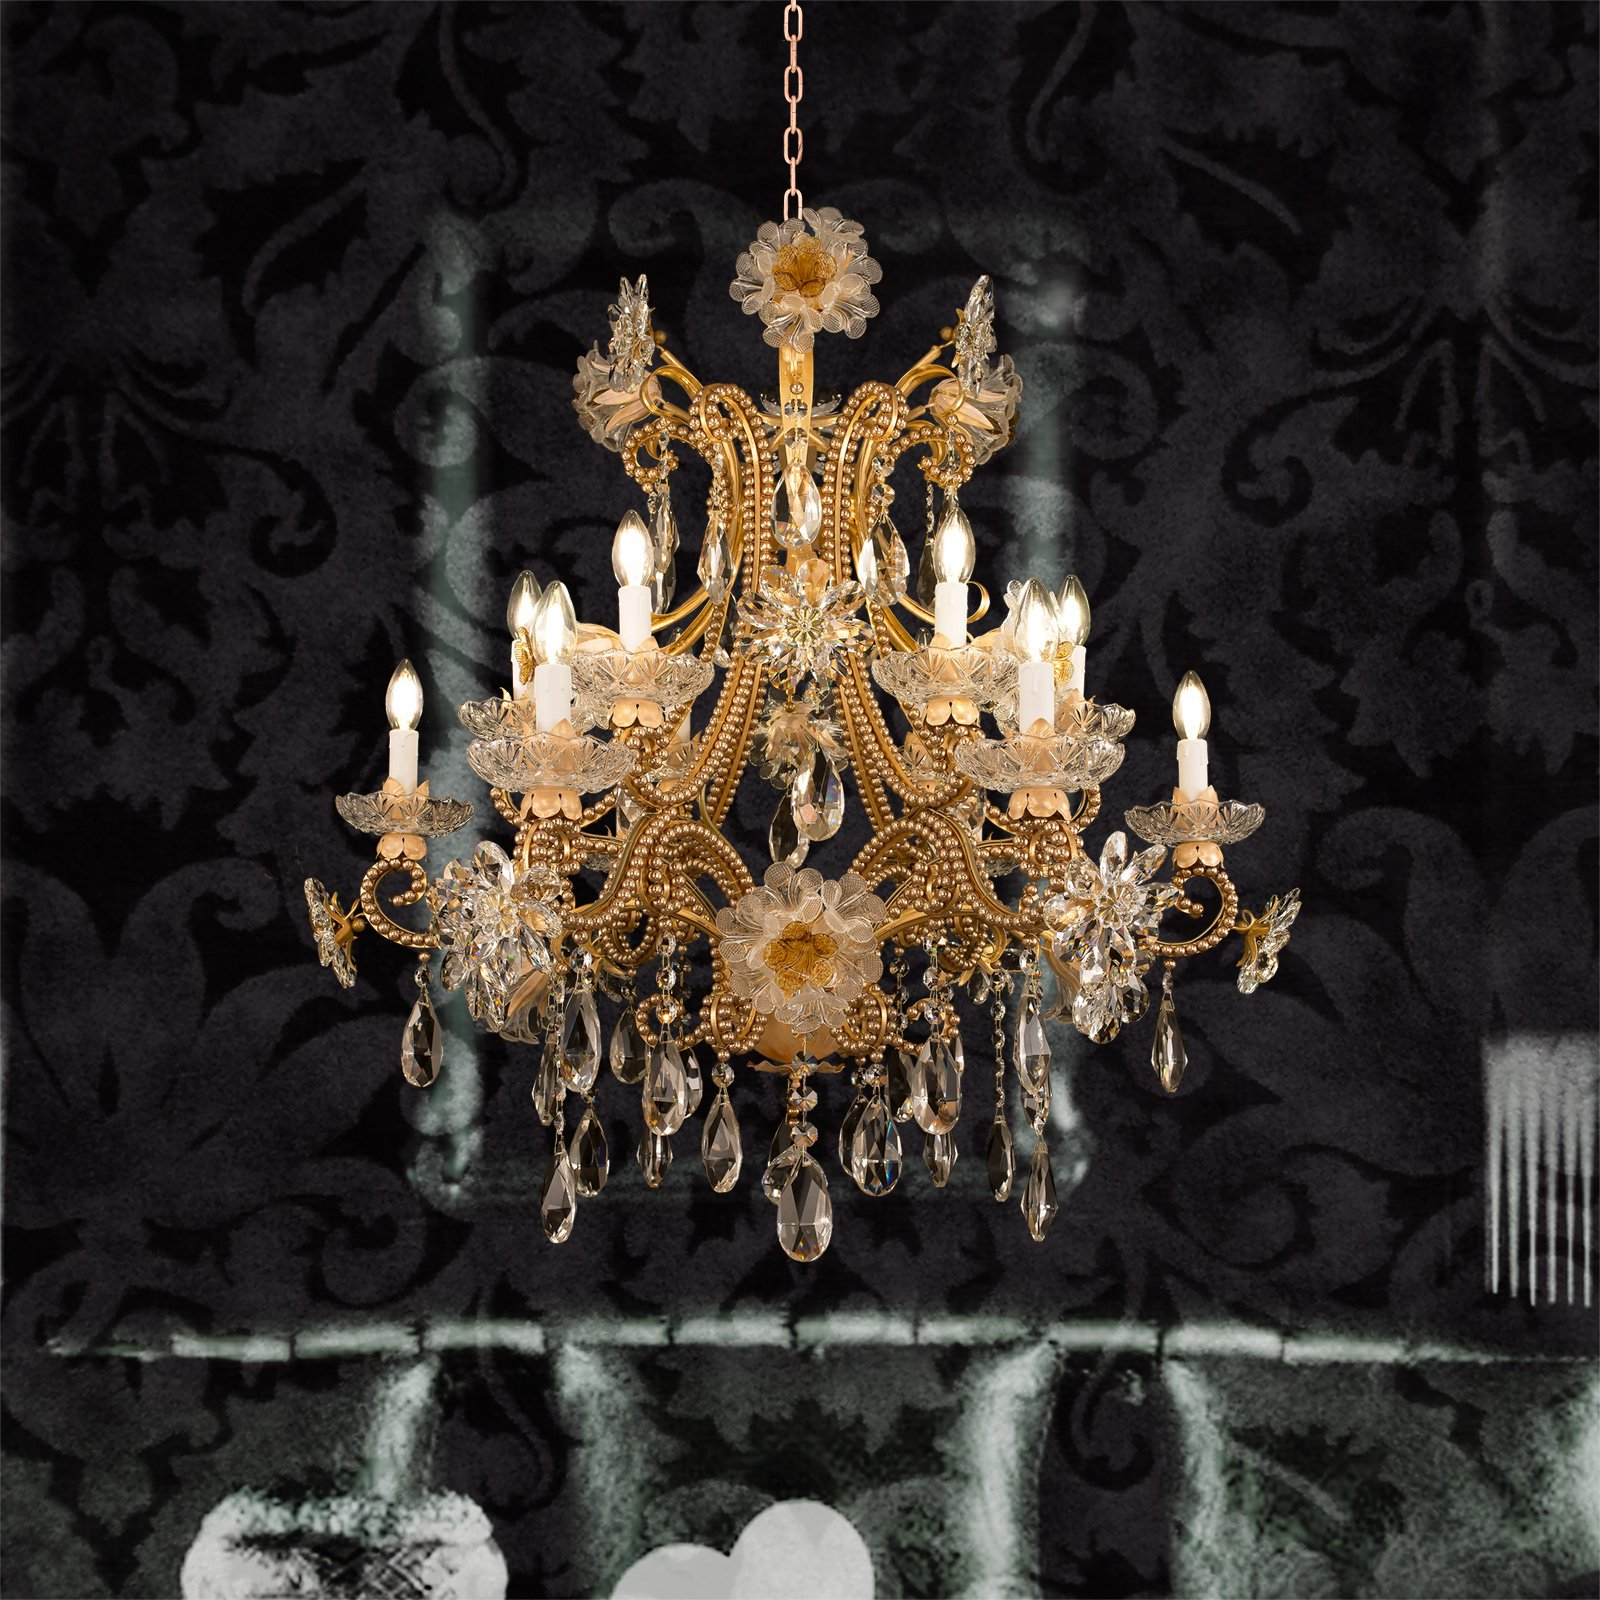 Chandeliers handmade in florence italy since 1970 by mechini new items 2018 collection arubaitofo Images